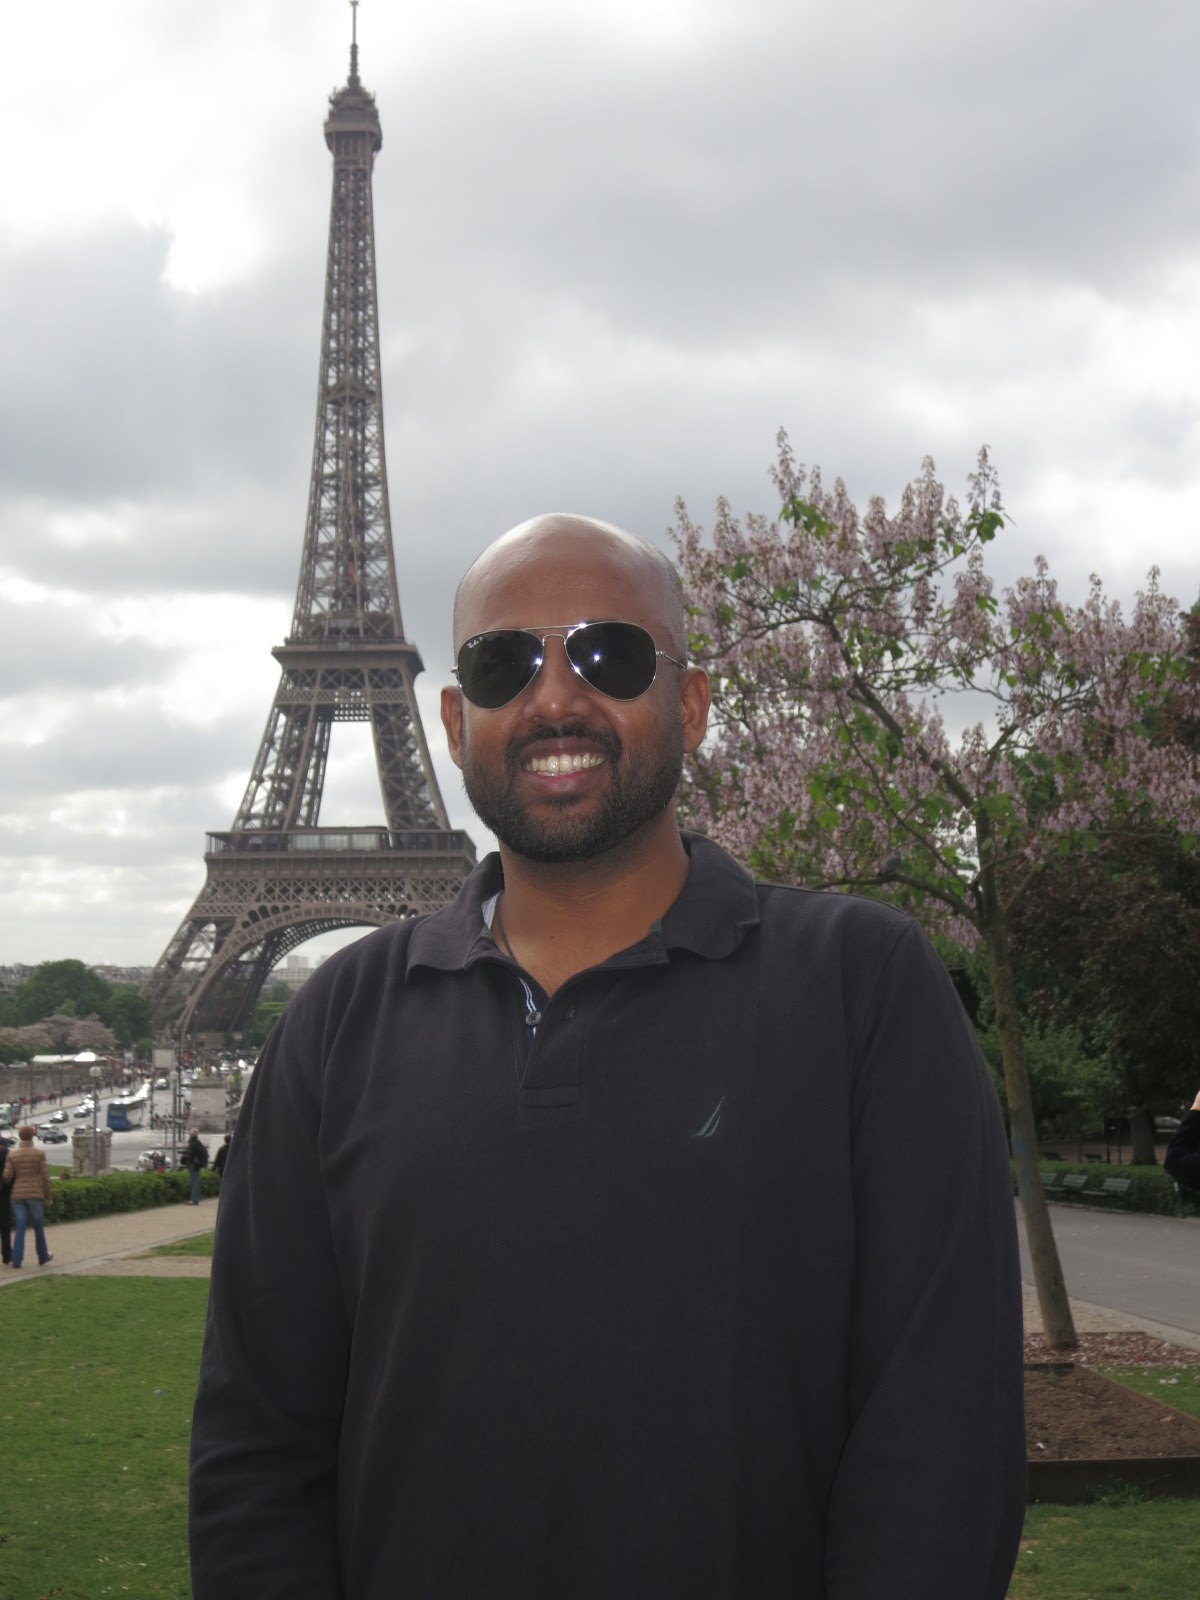 In front of the Eiffel tower at Paris, France